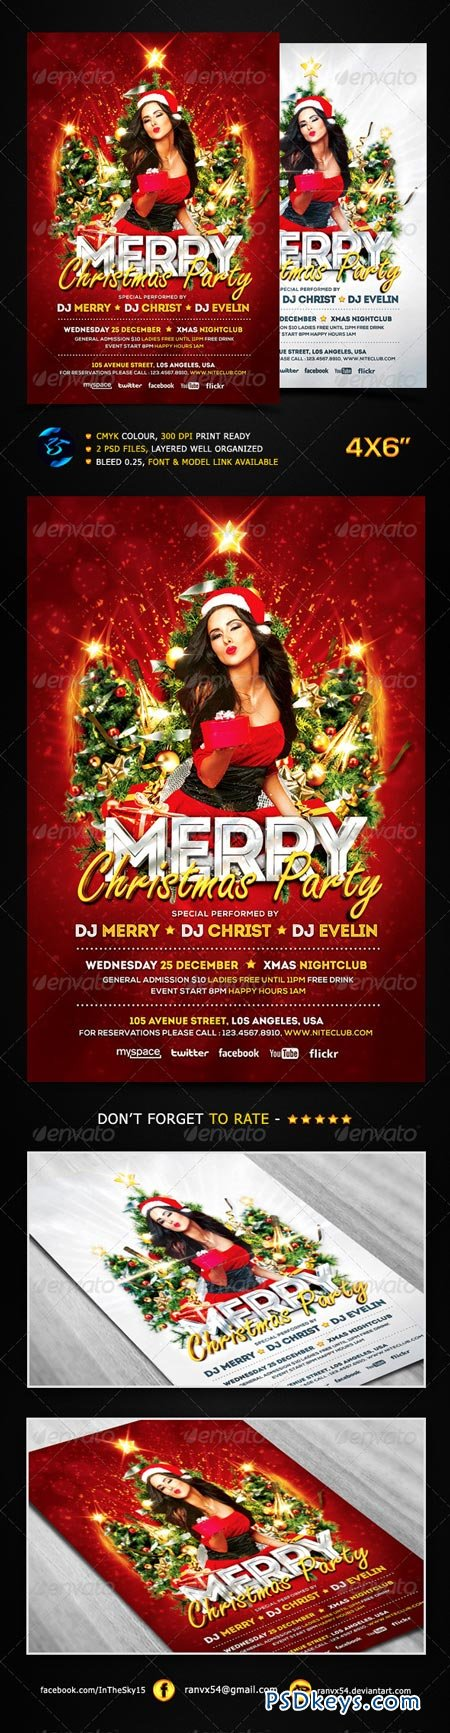 Merry Christmas Party Flyer Template 6352792 Free Download